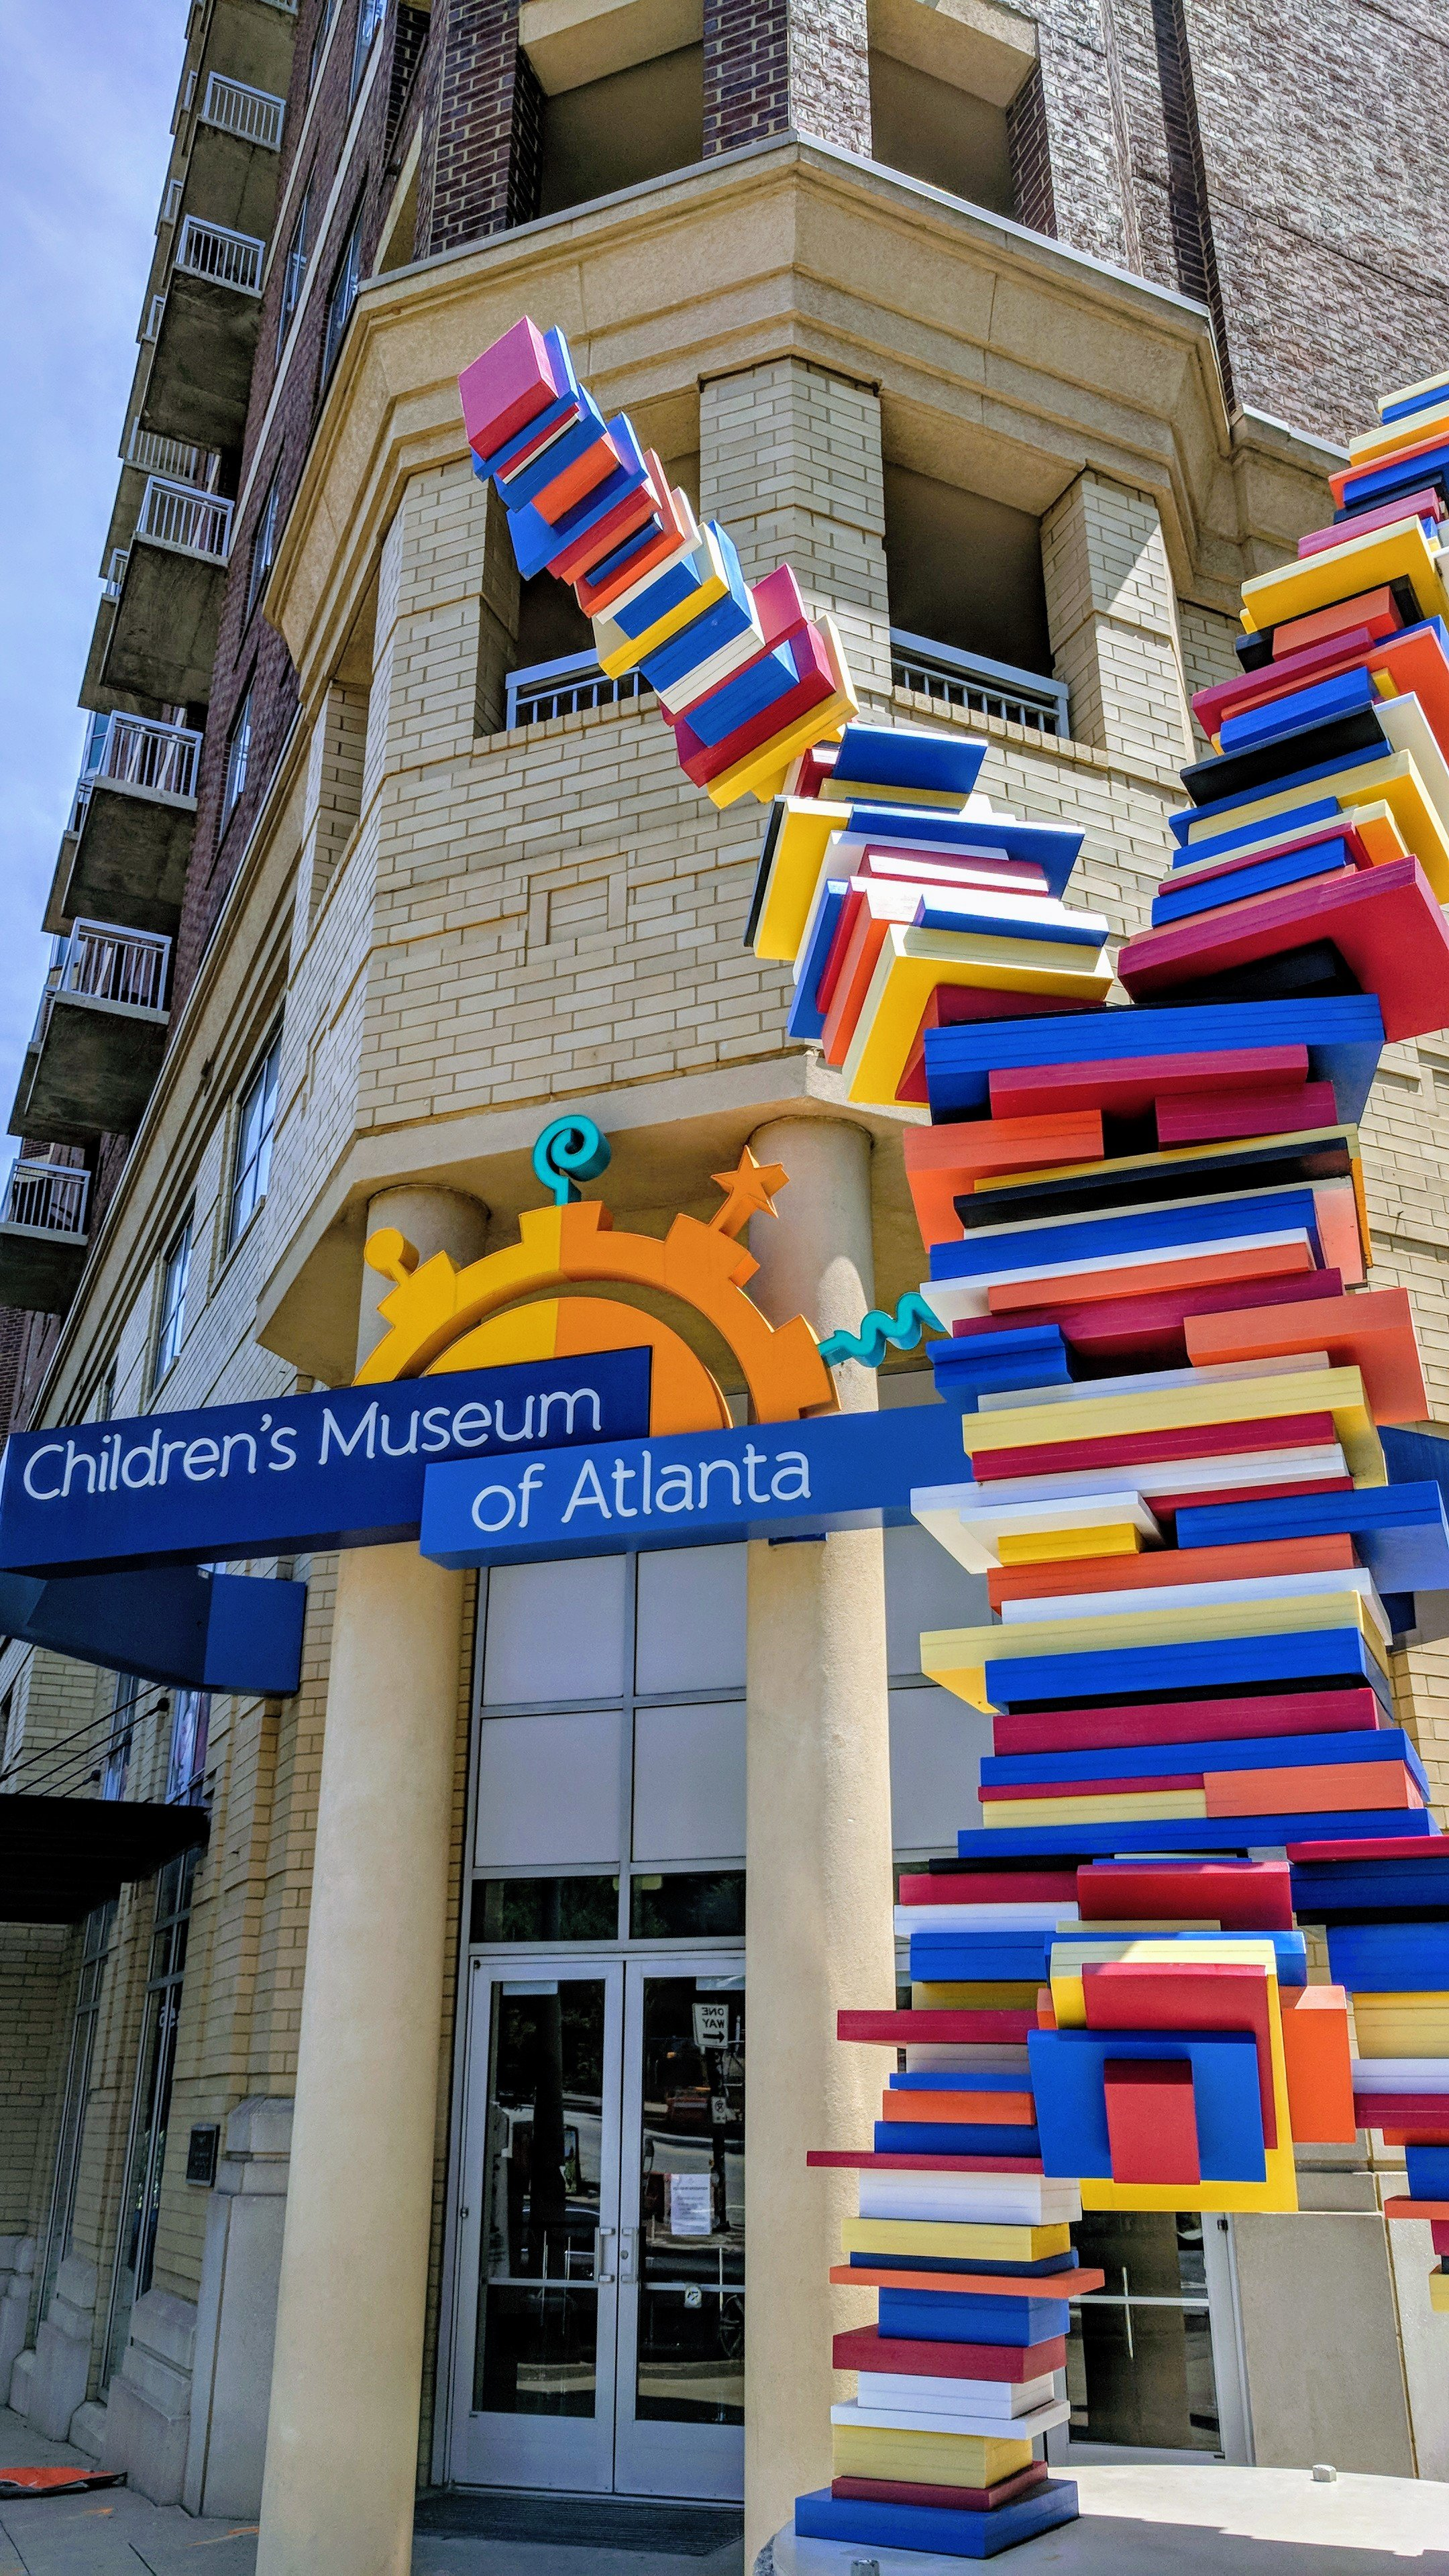 The entrance to Children's Museum of Atlanta.